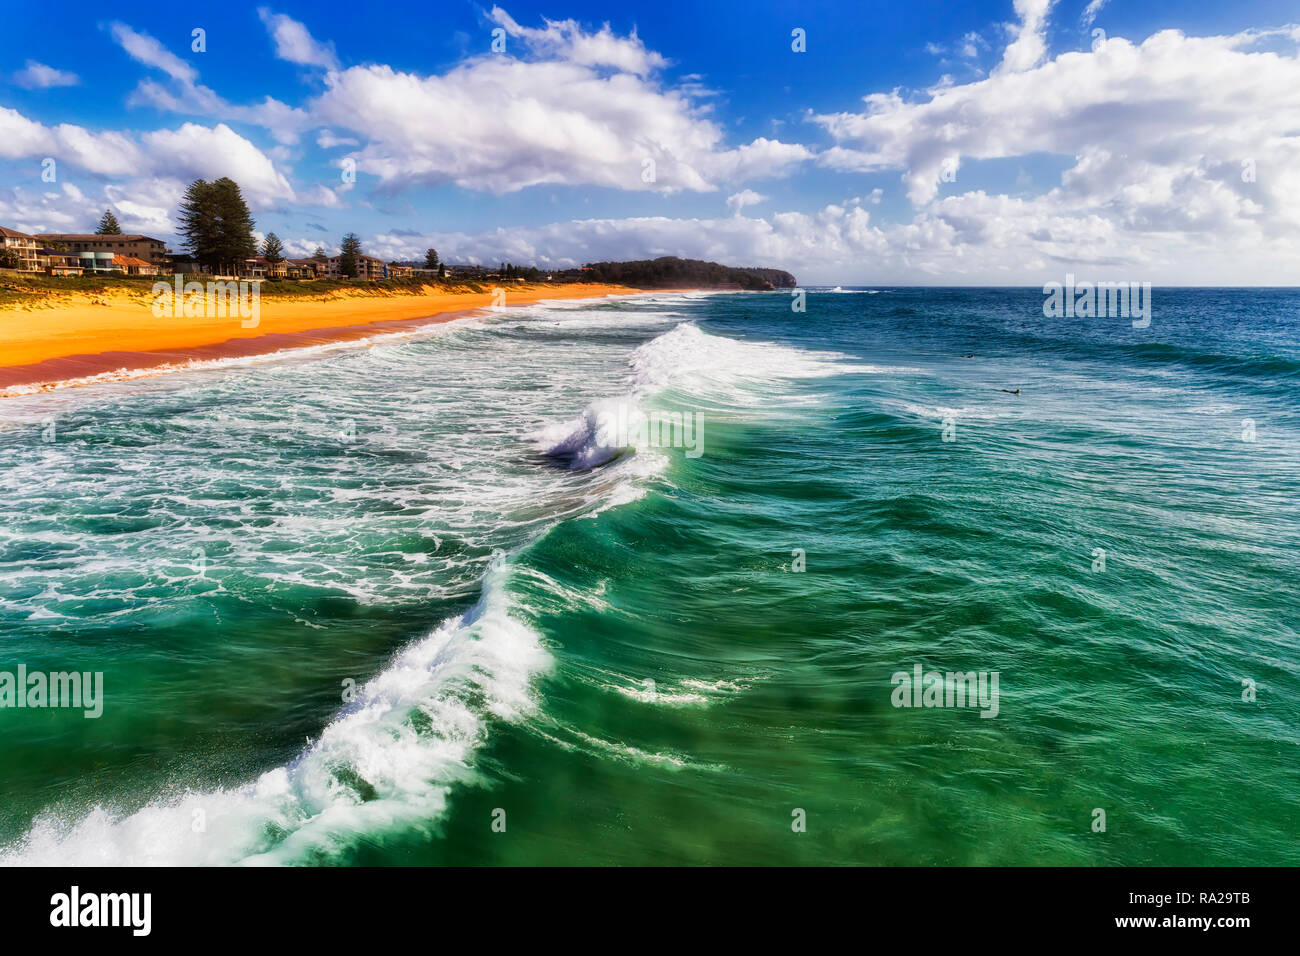 Rolling waves of emerald green Pacific ocean water on the sandy Narrabeen beach with floating surfers under blue summer sky. - Stock Image